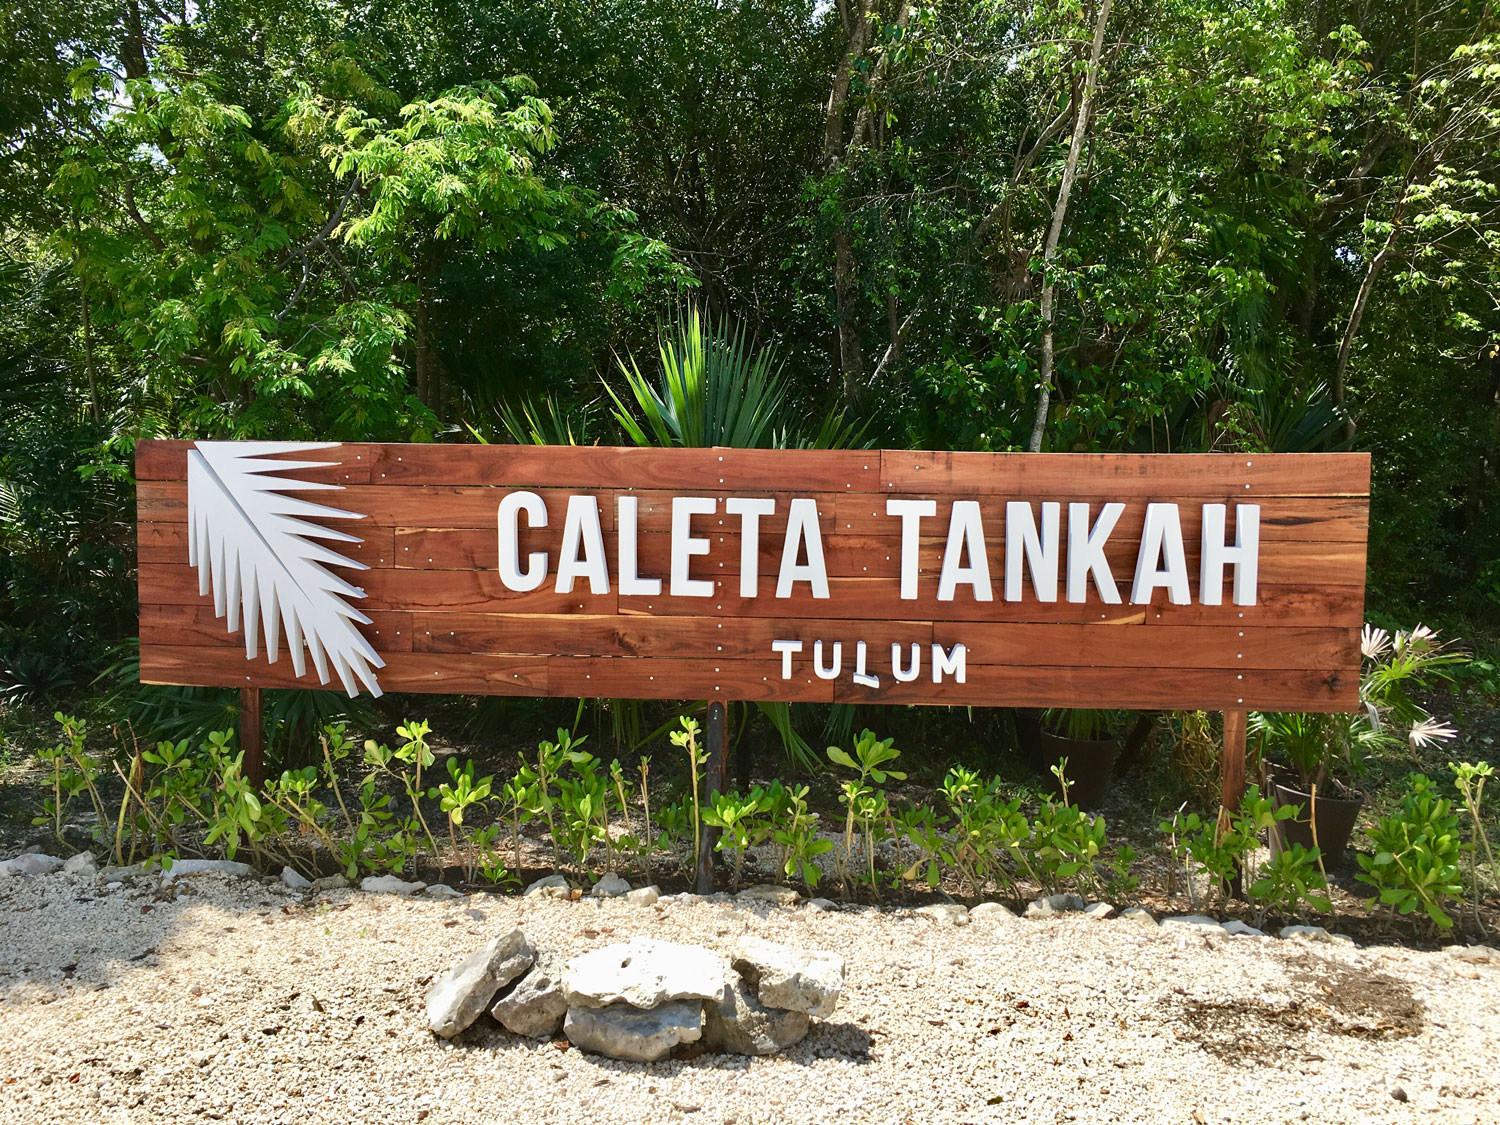 Turn in by this sign for Tankah Bay.